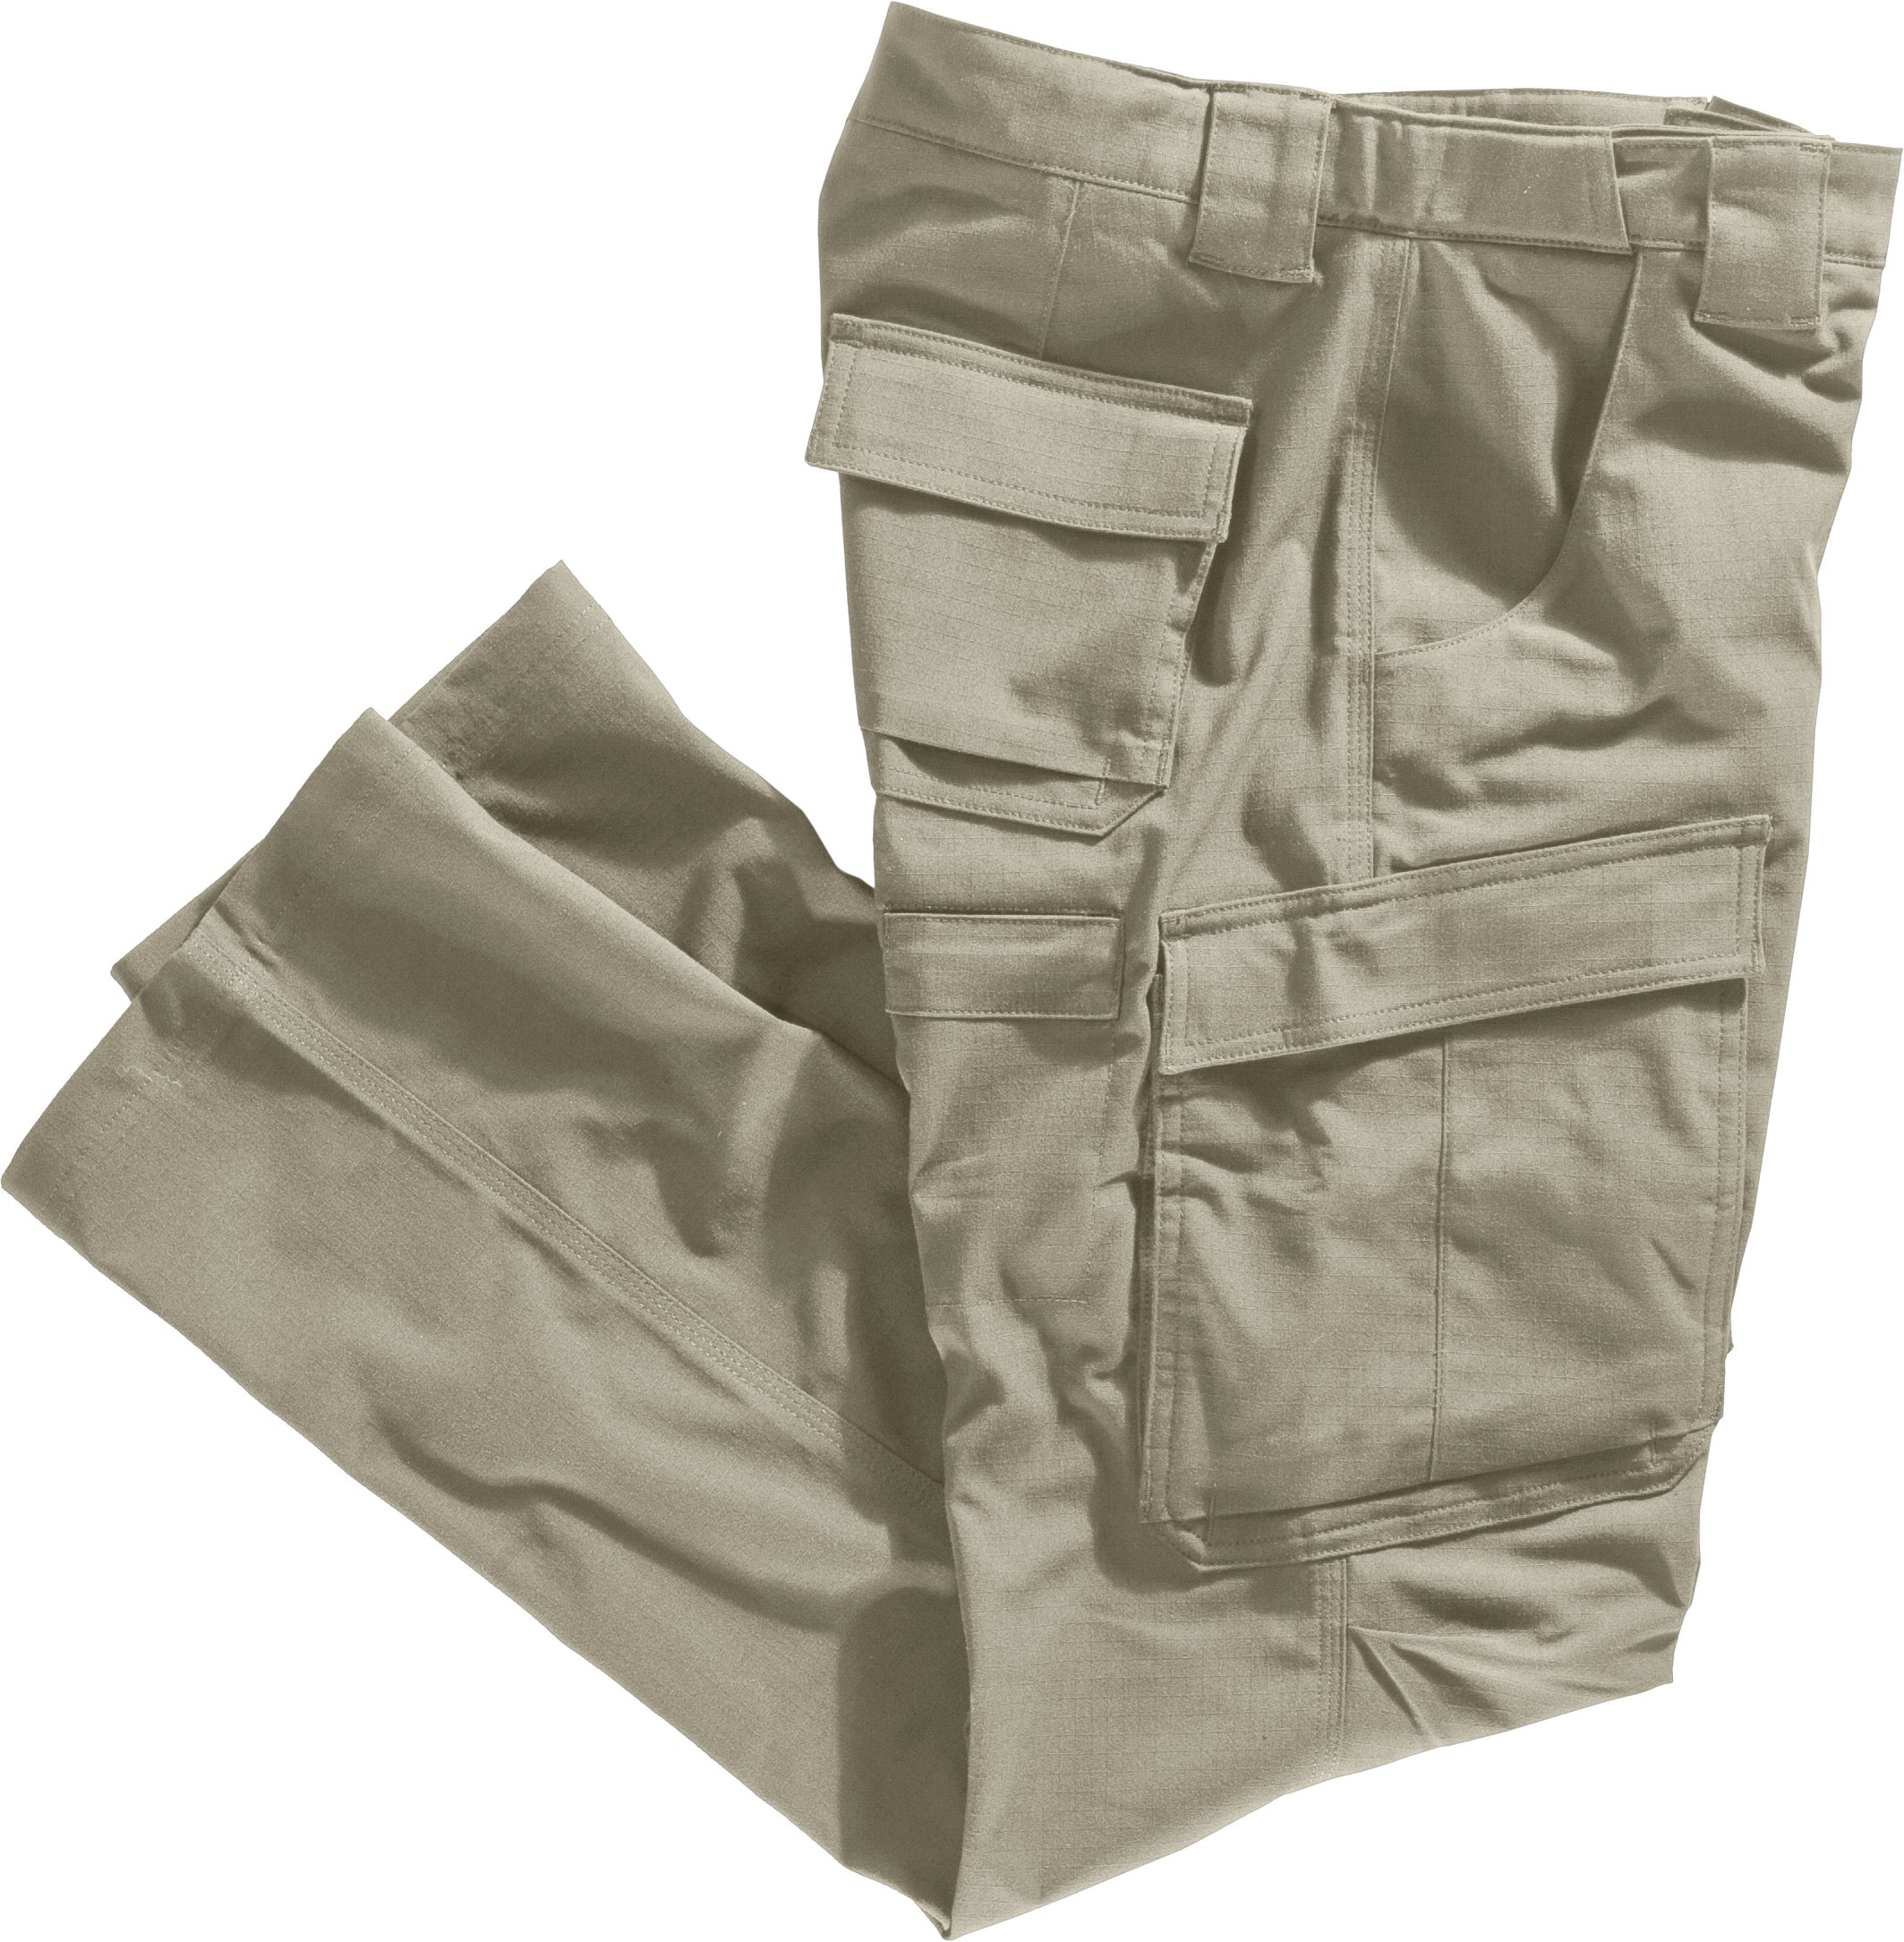 Women's Tactical Duty Pants, Desert Sand, Laydown